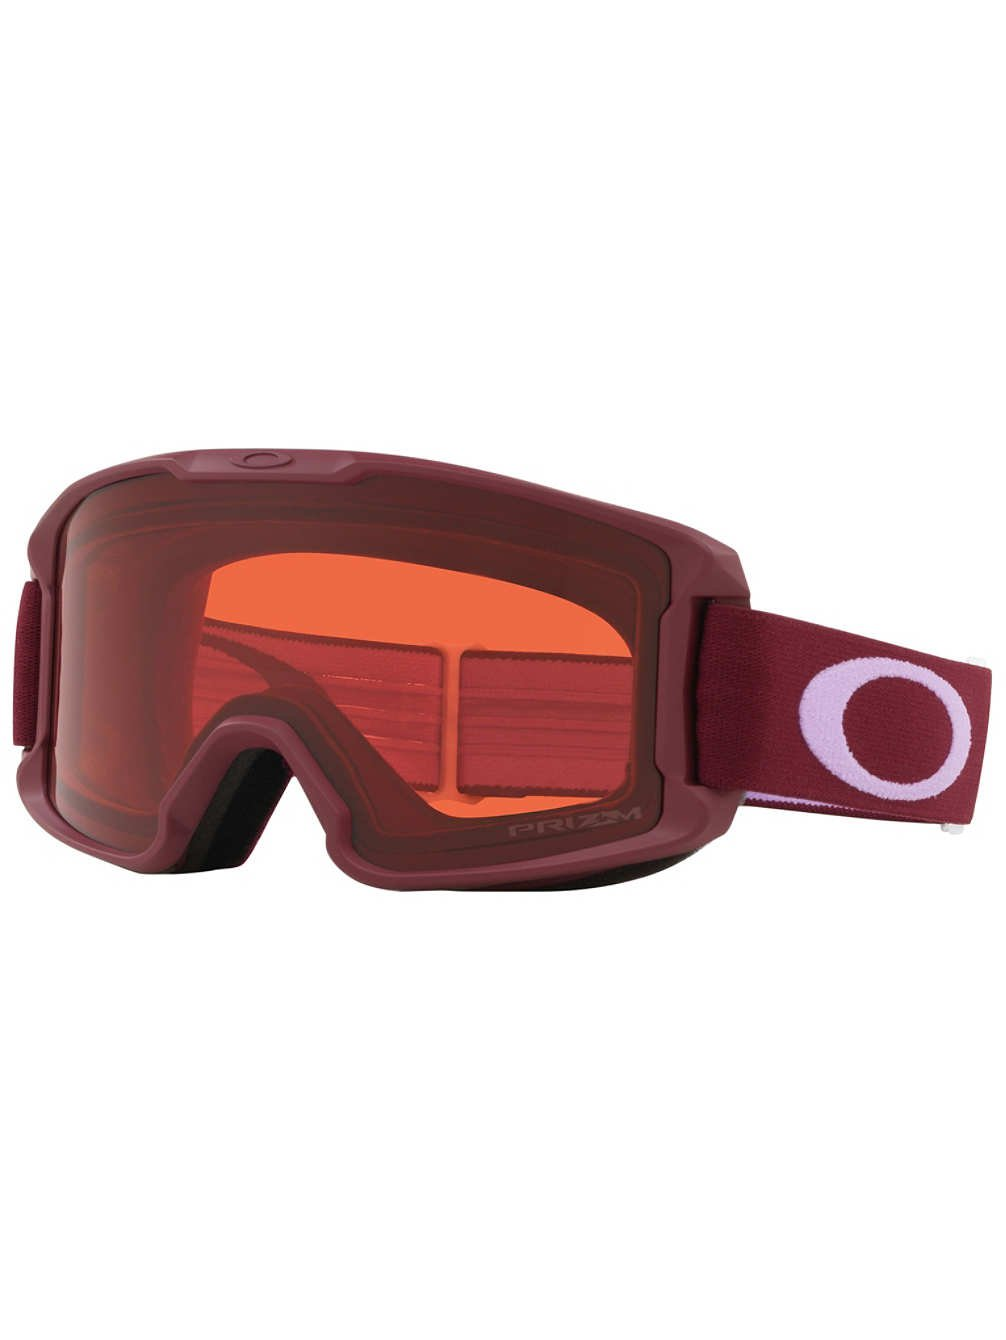 Oakley Line Miner Youth Snow Goggle, Port Lavender, Small by Oakley